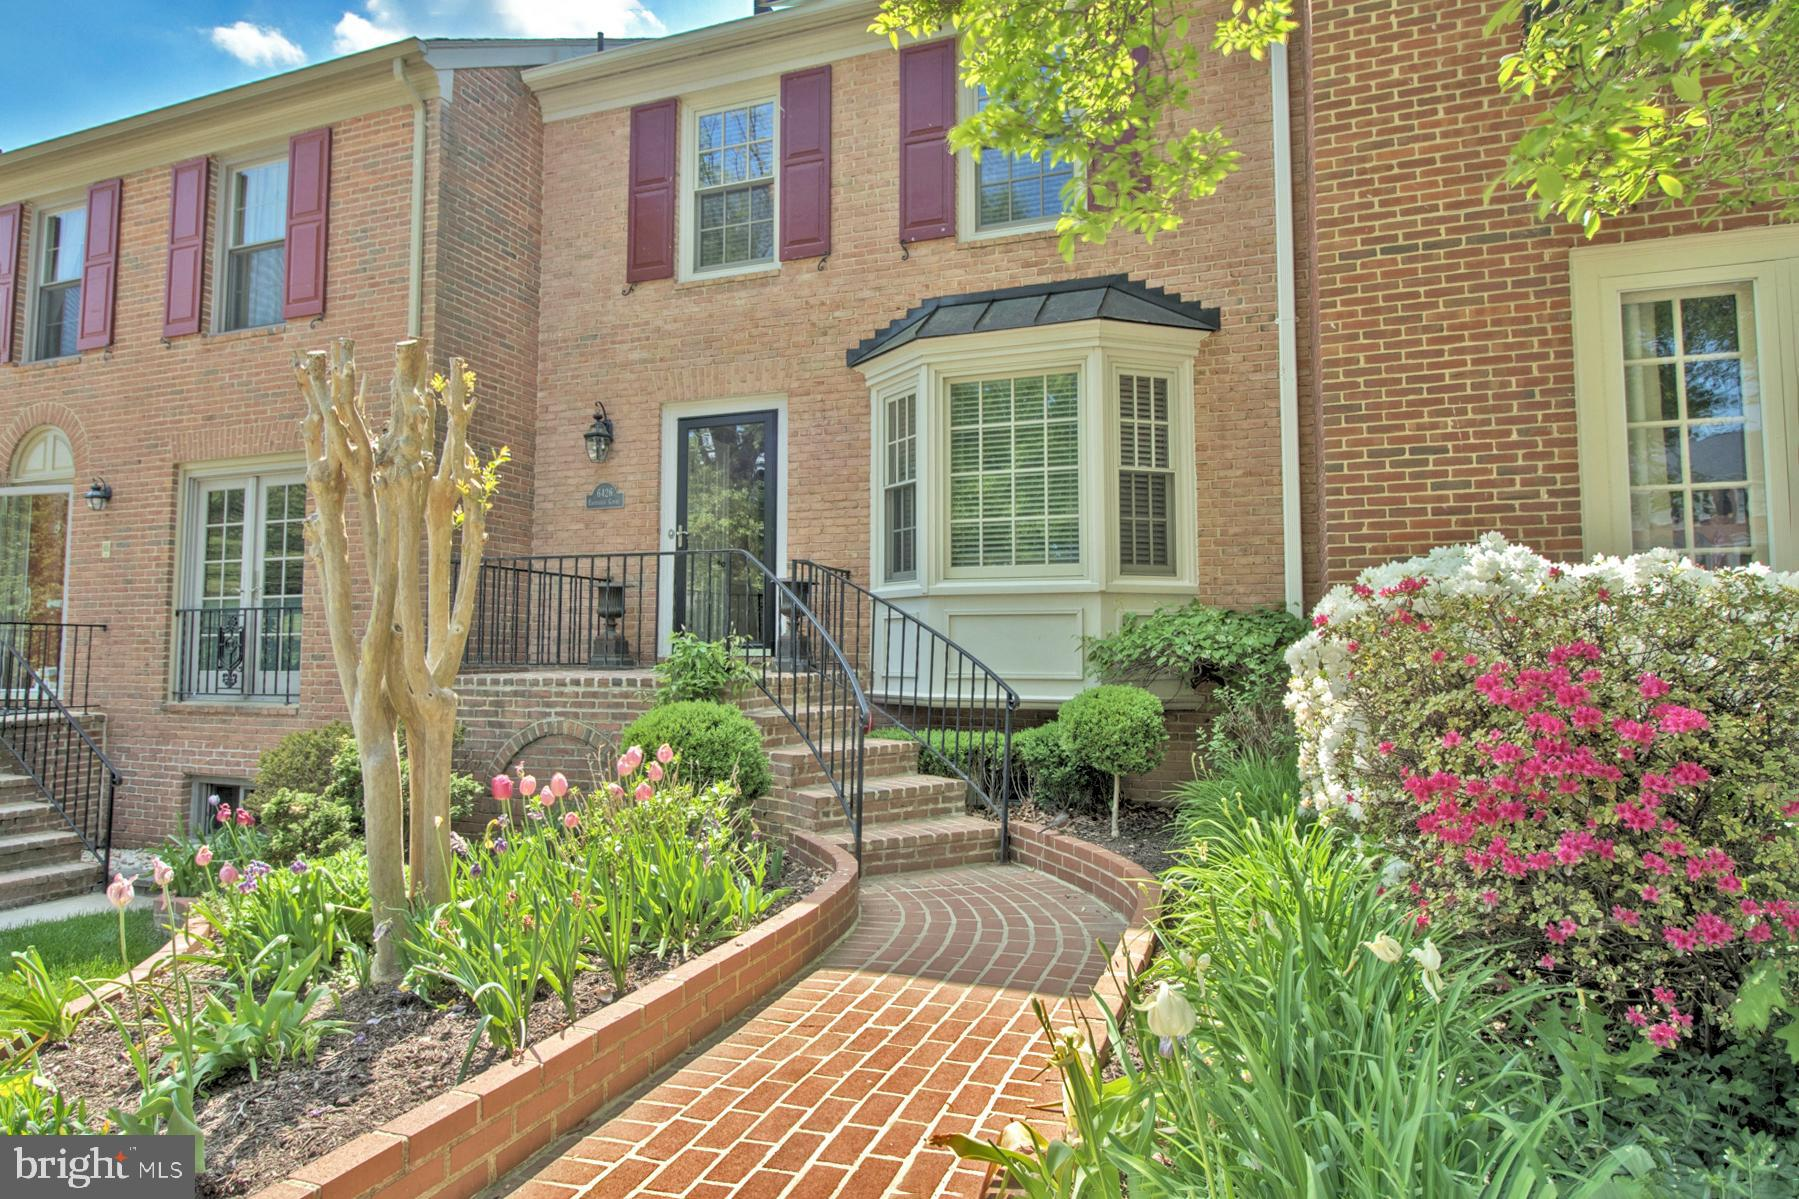 Beautiful town home located in sought after Rhygate! 3 levels, 2 Fireplaces, 4 bedrooms, 2 full baths, and 2 half baths. Tile floors in kitchen, wood blinds, hardwood throughout, finished basement with 4th bedroom - walk out to brick patio and elegant landscaping all around! Adjacent to Springfield Country Club, VRE is 2 miles away, and Metro is 4 miles. VRE is only 4 stops to new Amazon National Landing, and is an incredible alternative to Metro.  Pet friendly :)